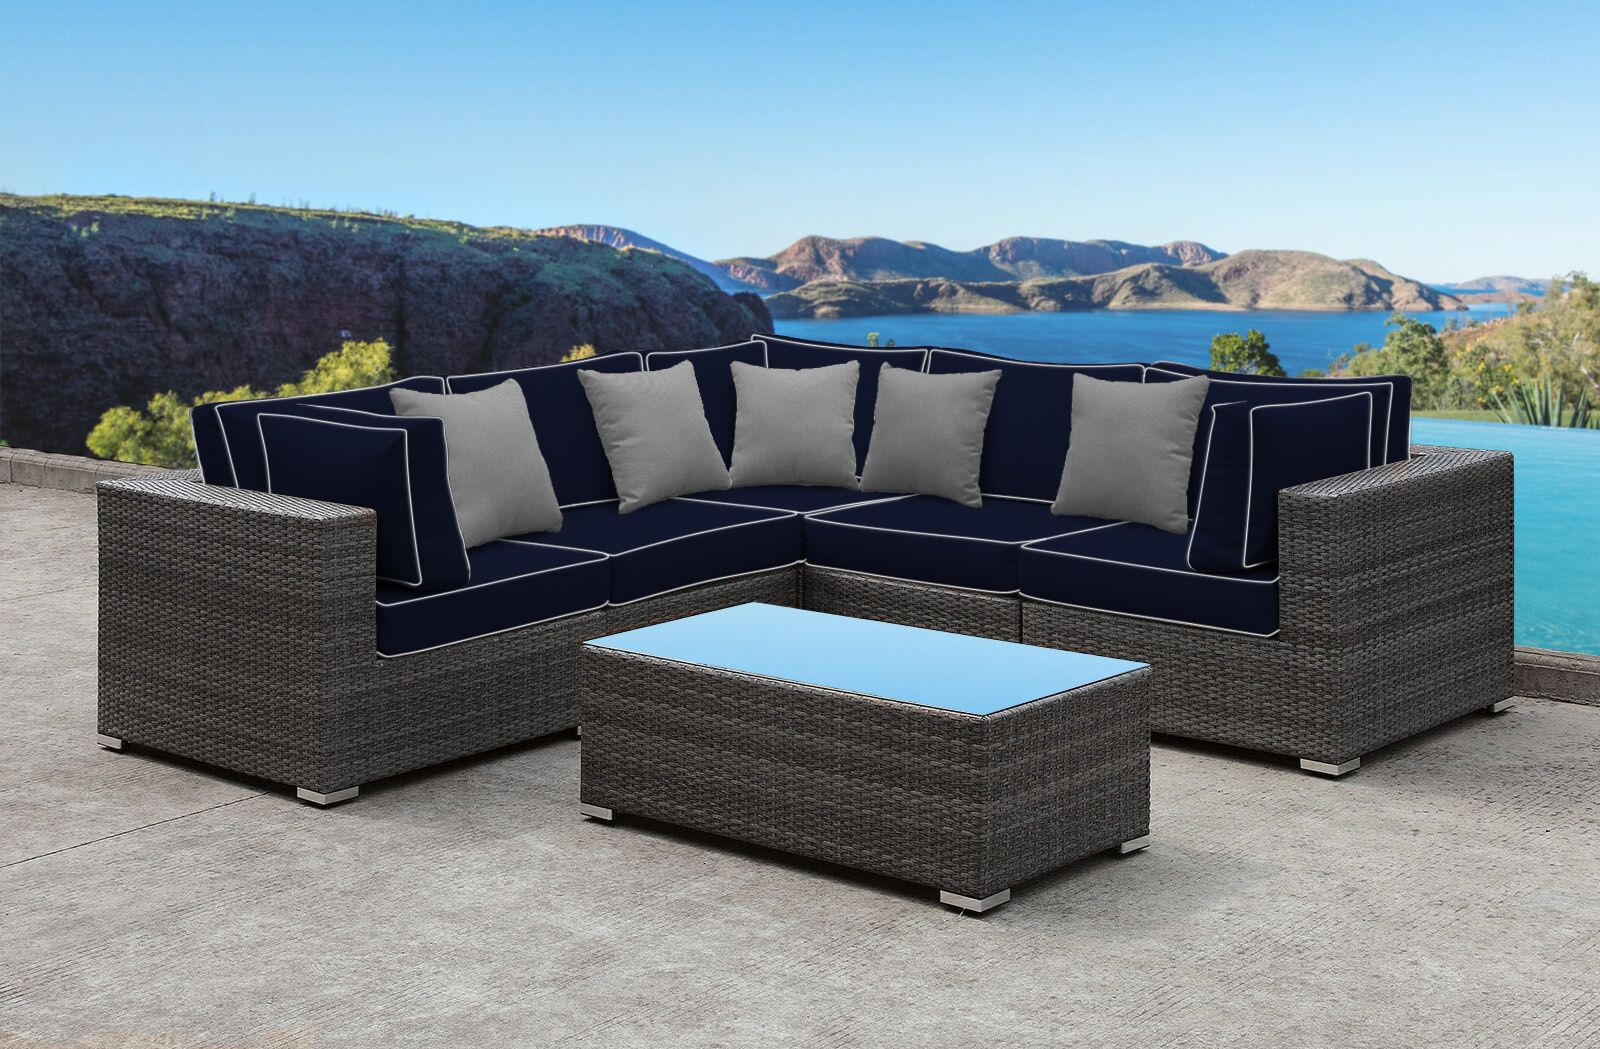 Yeager 5 Piece Rattan Sectional Set with Cushions Cushion Color: Navy/Gray